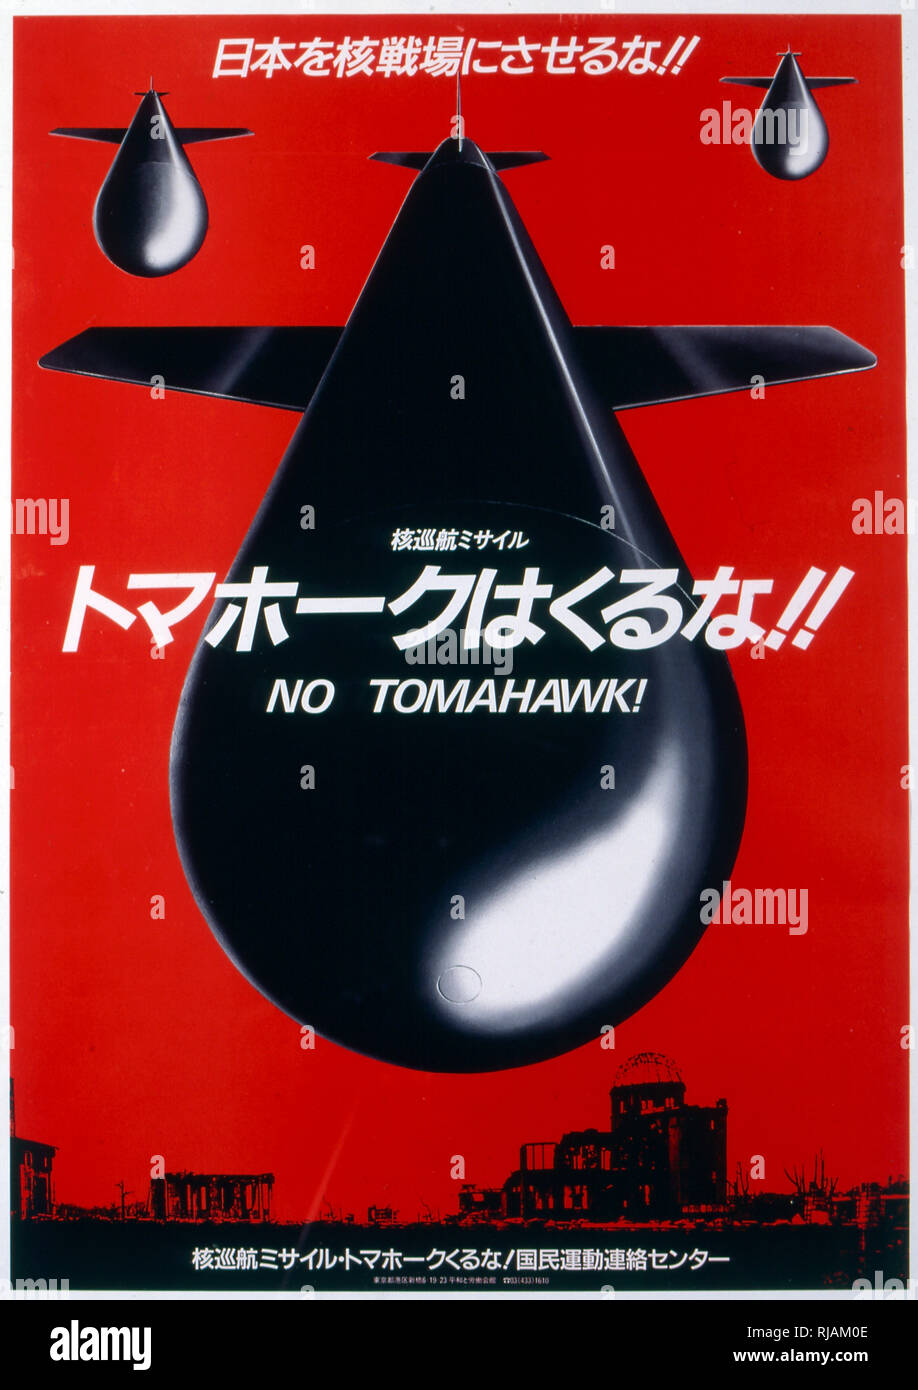 no tomahawk missiles,  anti-nuclear, Japanese poster circa 1984 - Stock Image